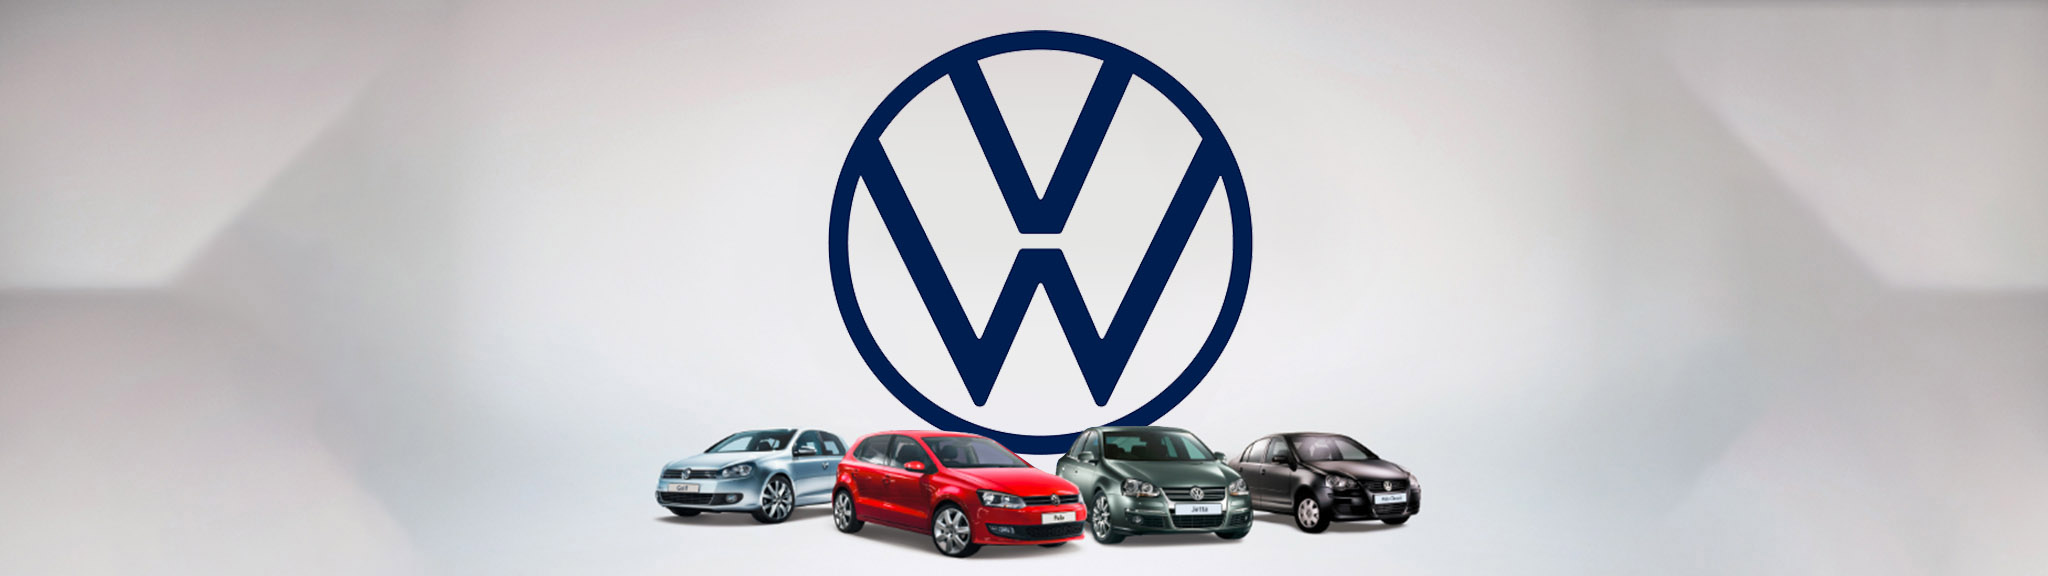 Compare the range of Volkswagen models